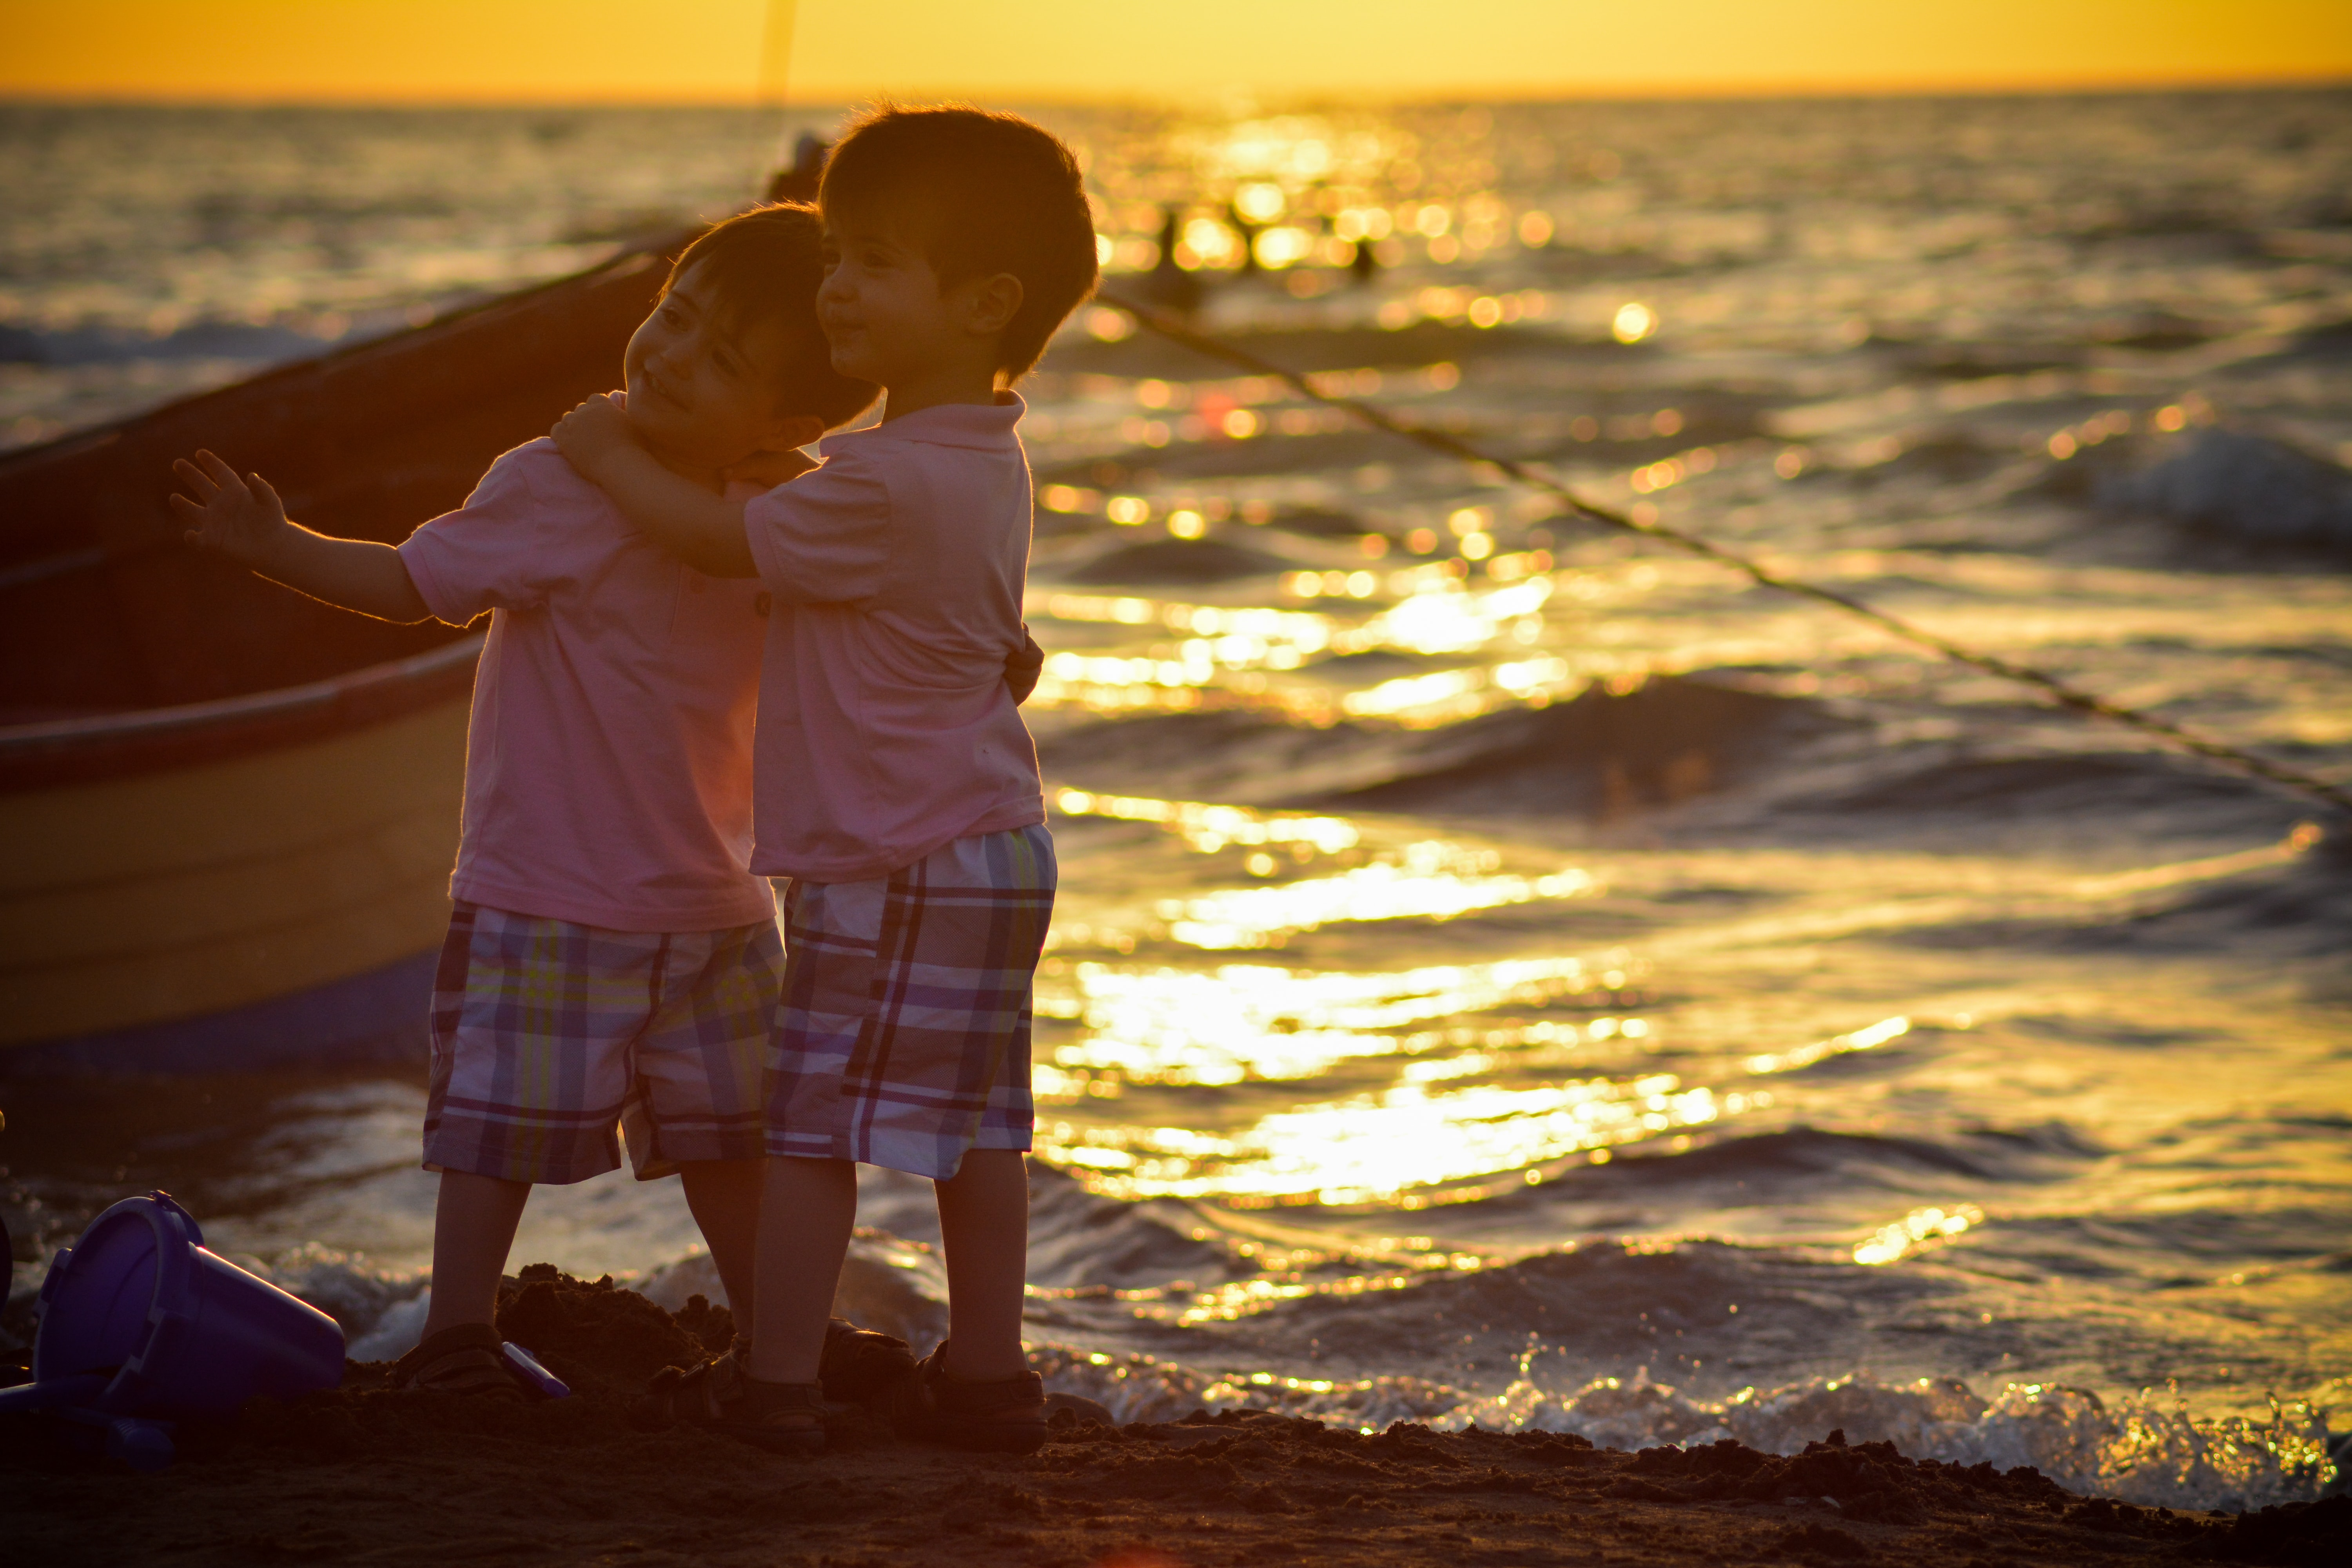 two boys standing on seashore during sunset